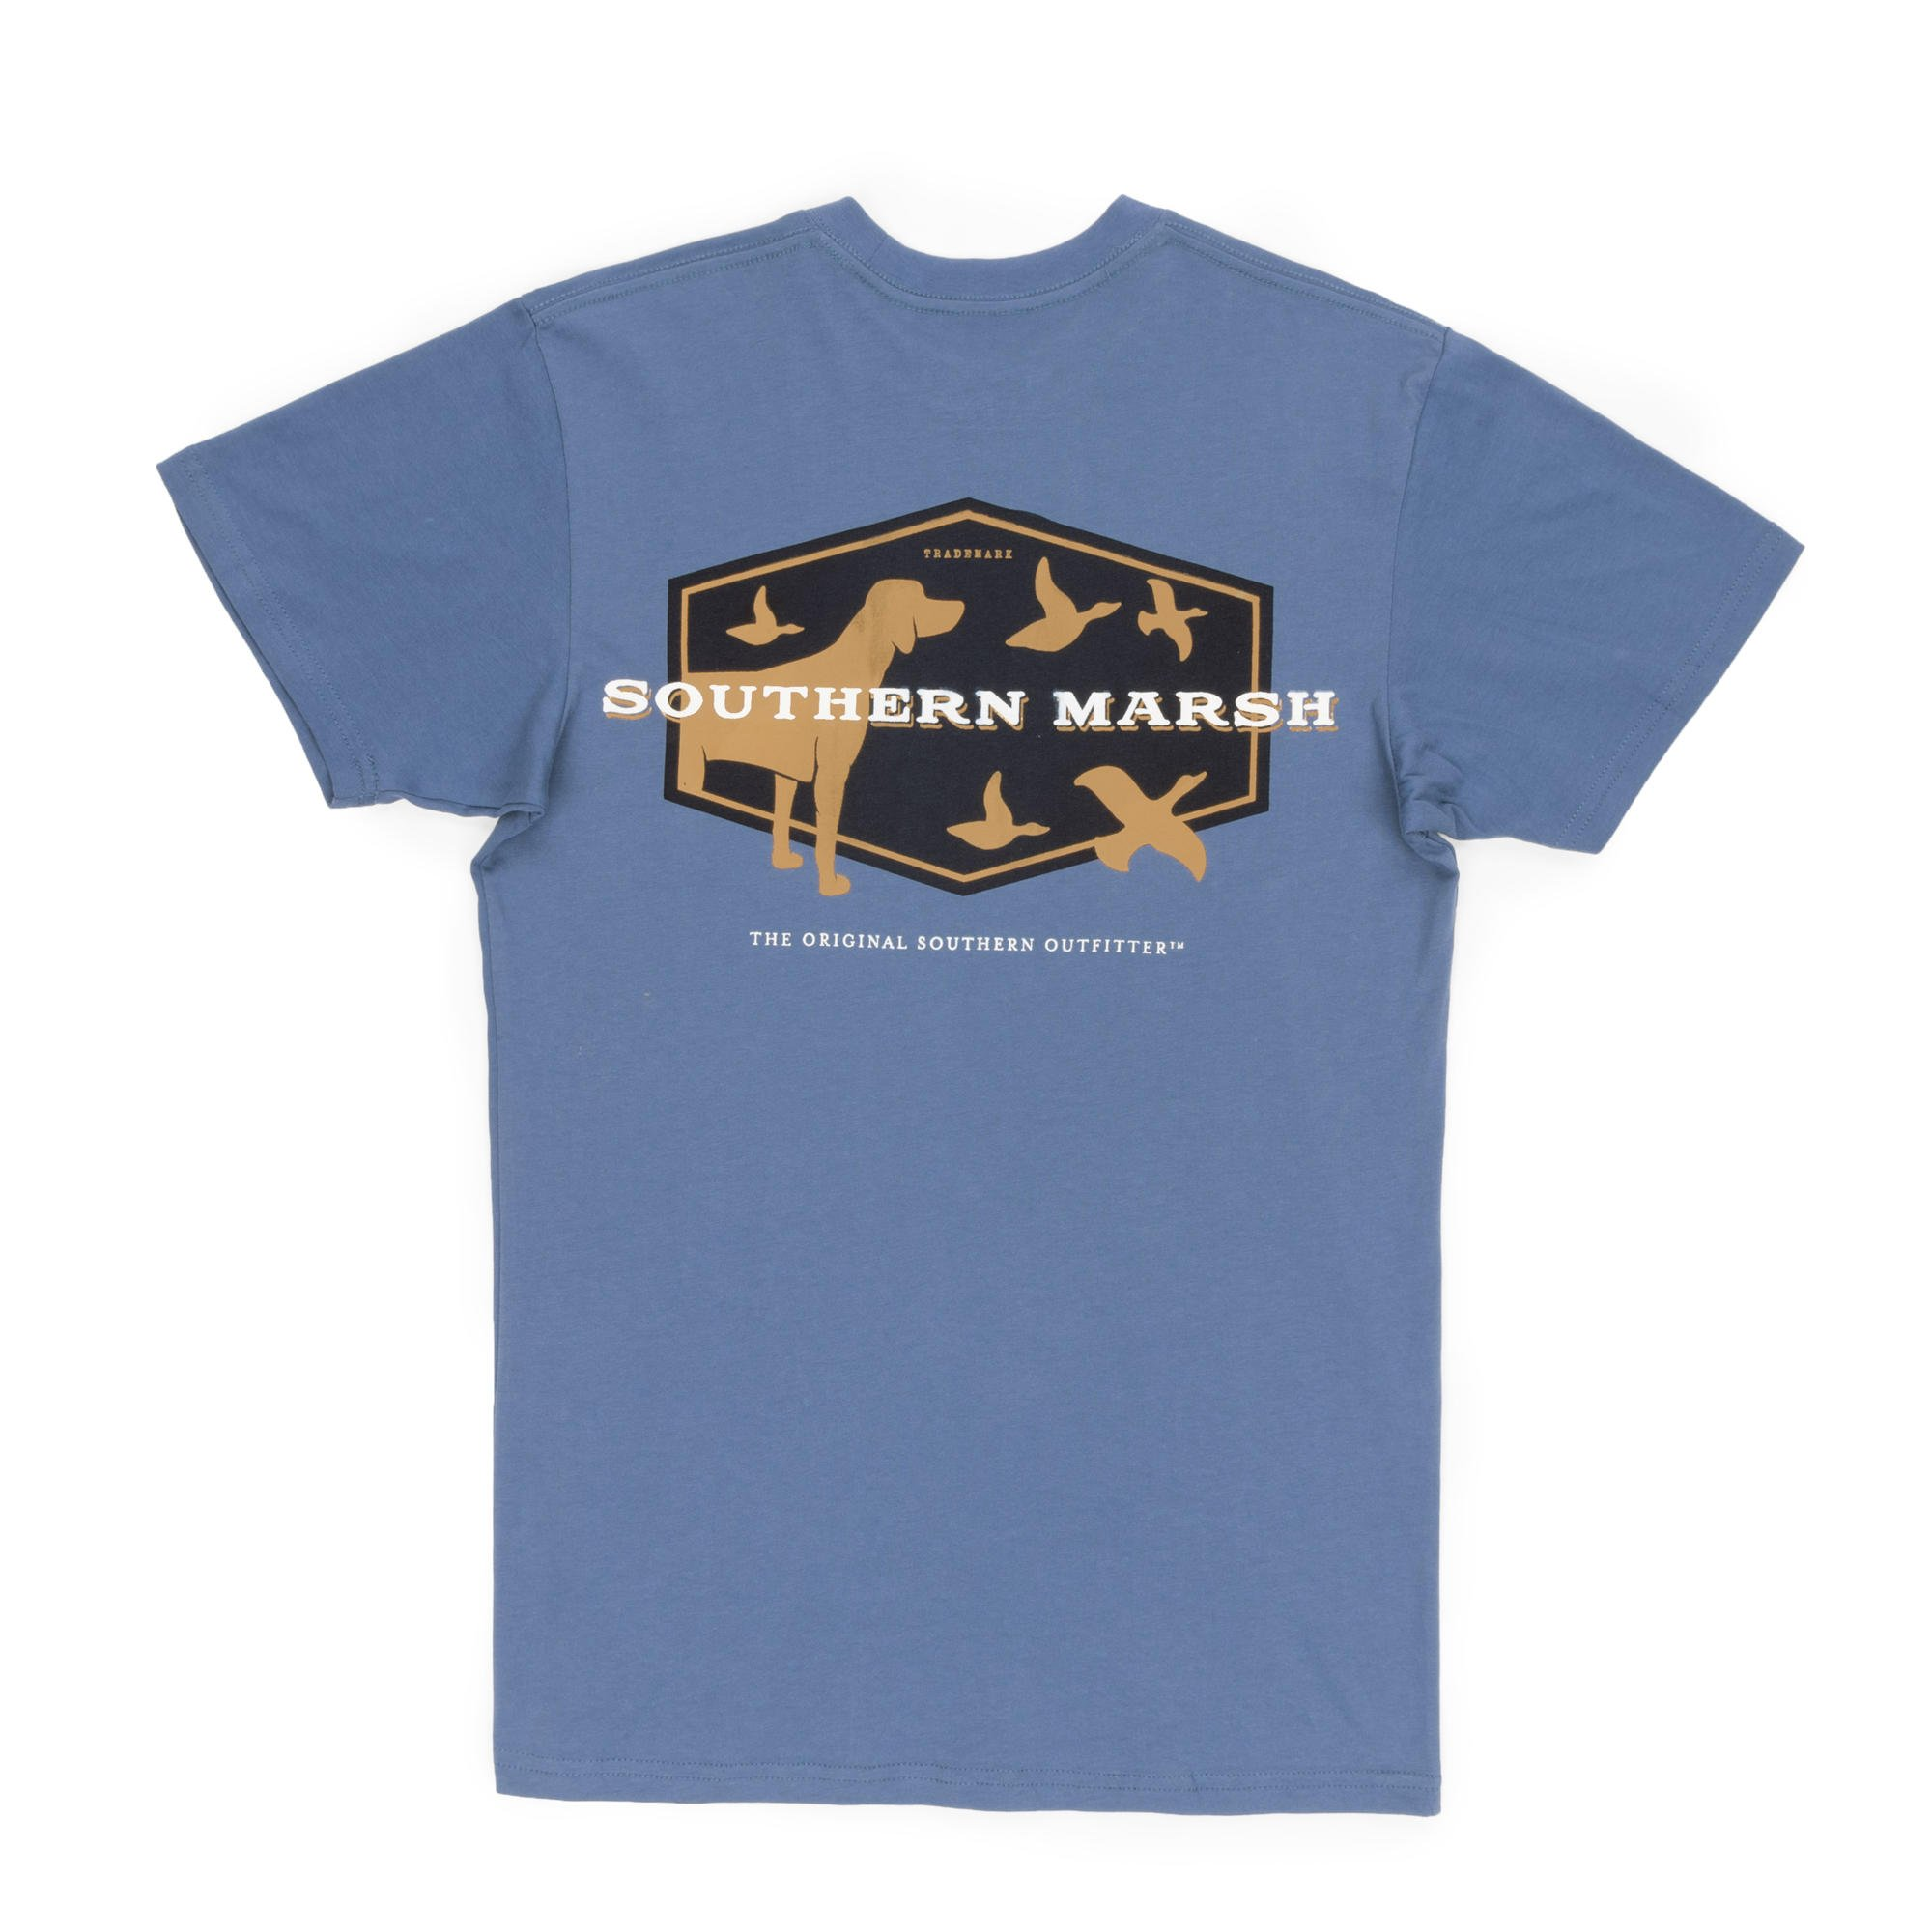 Southern Marsh Branding-Hunting Dog Short Sleeve Pocket T-Shirt-Bluestone-XXXL